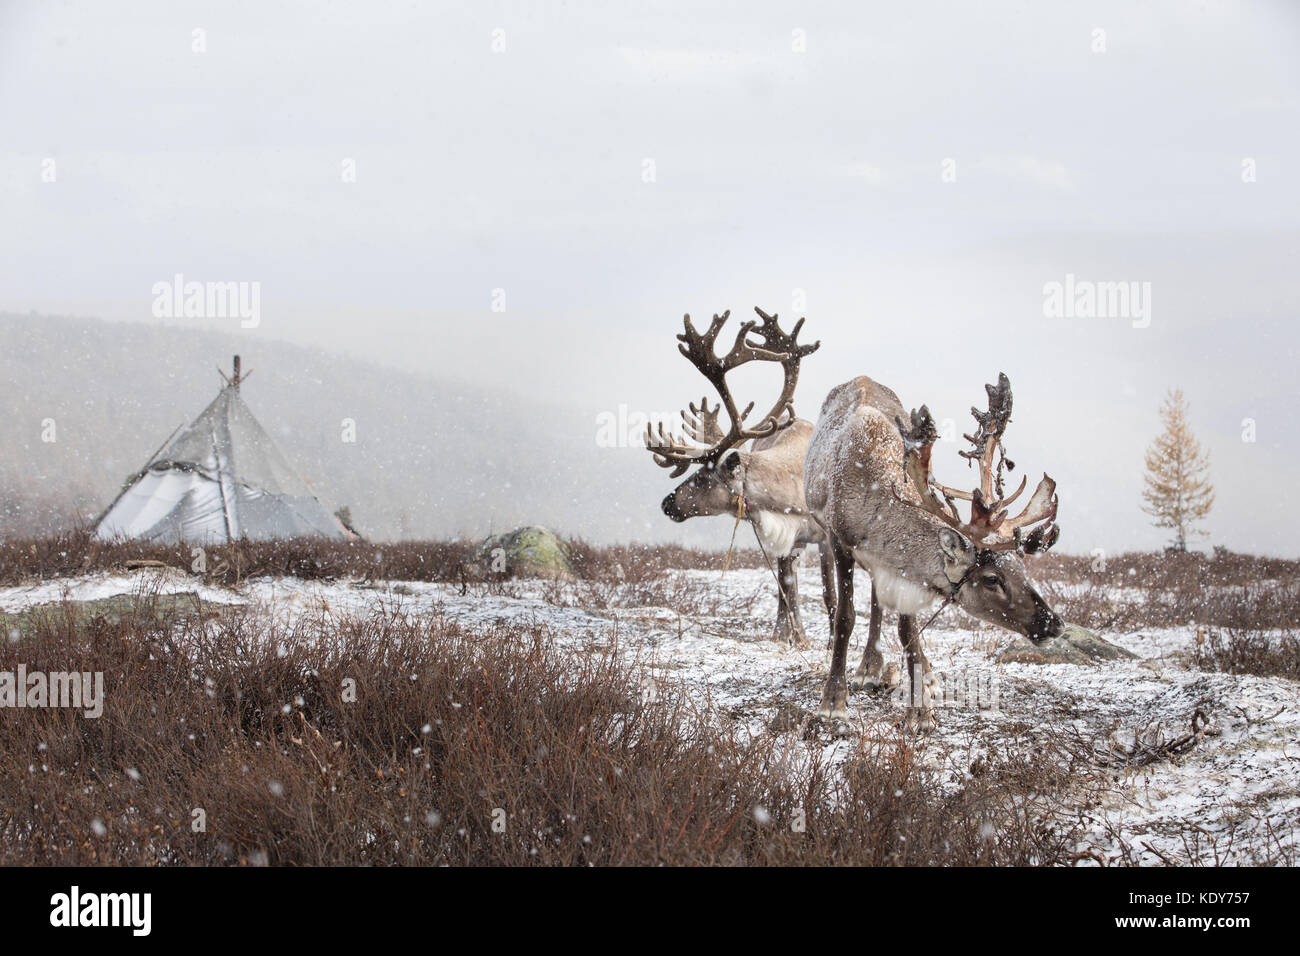 Portrait of two reindeer domesticated by the tsaatan people in front of a snowy yurt. Khuvsgol, Mongolia. - Stock Image